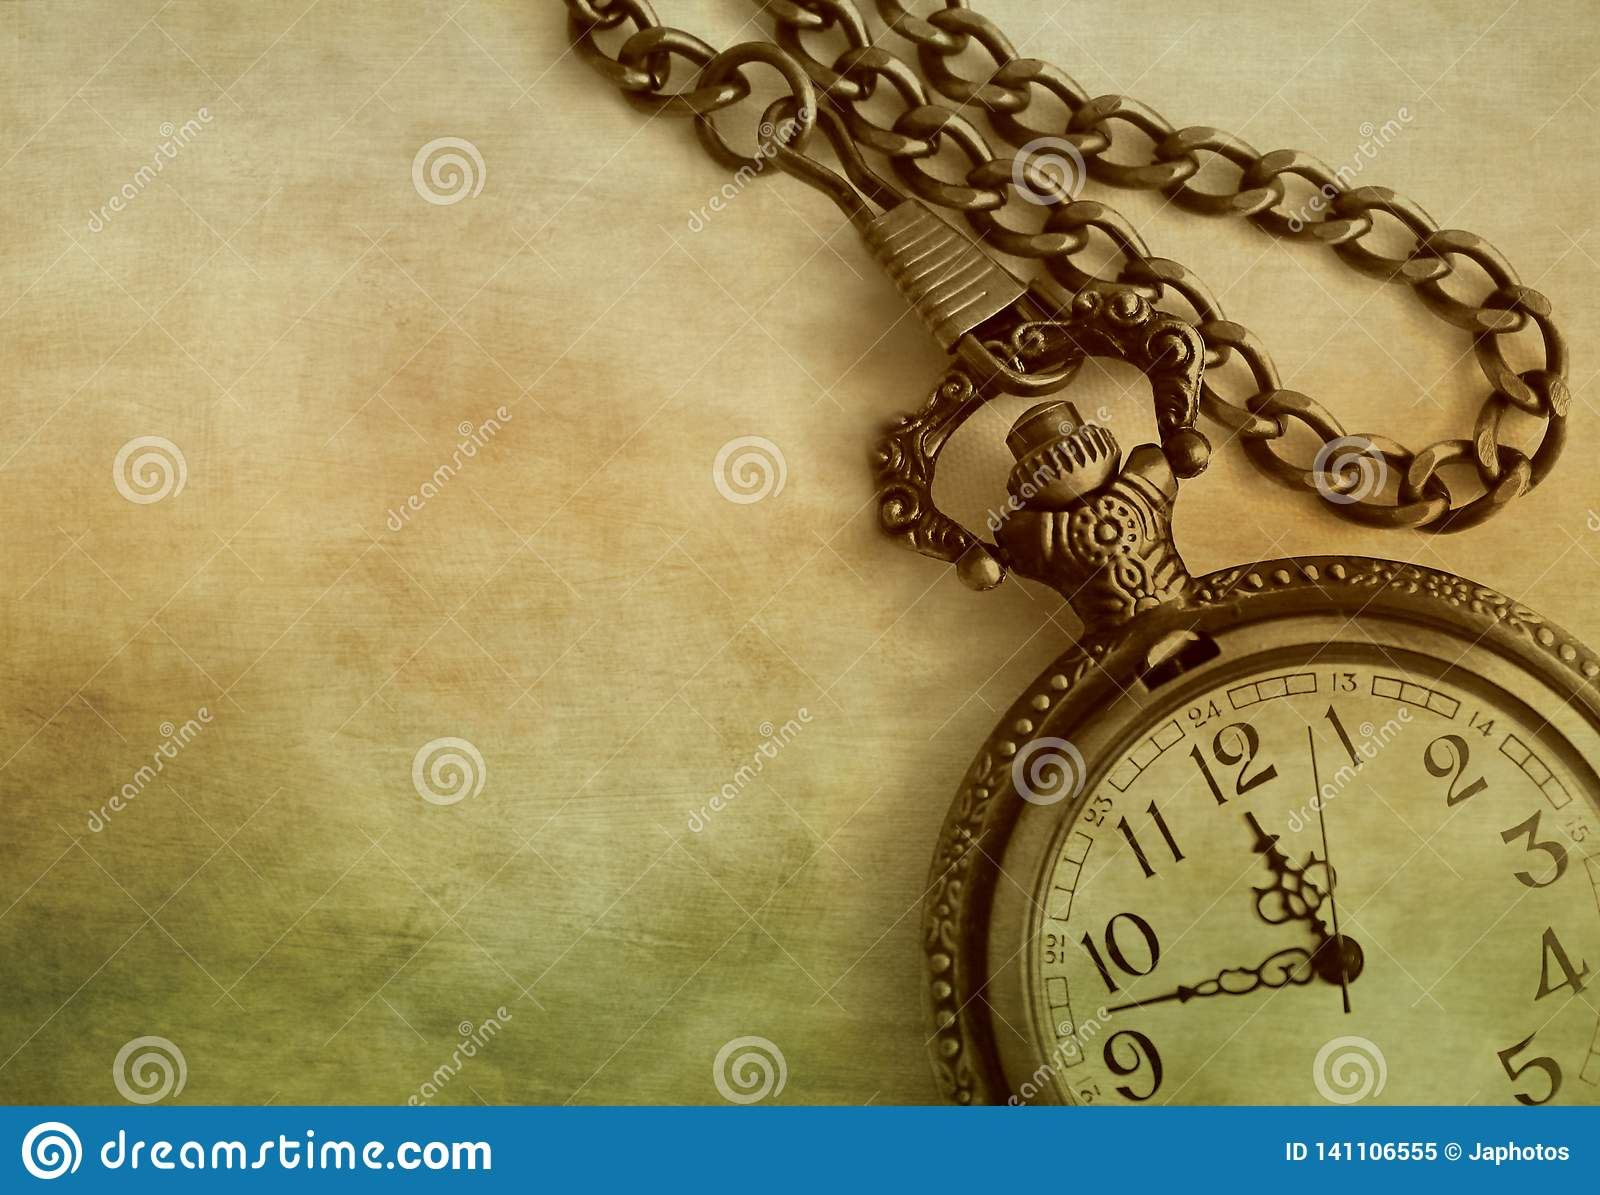 Artistic Close Up Of Antique Pocket Watch And Chain On Colorful Textured Background With Copy Space Stock Image Image Of Brass Bronze 141106555